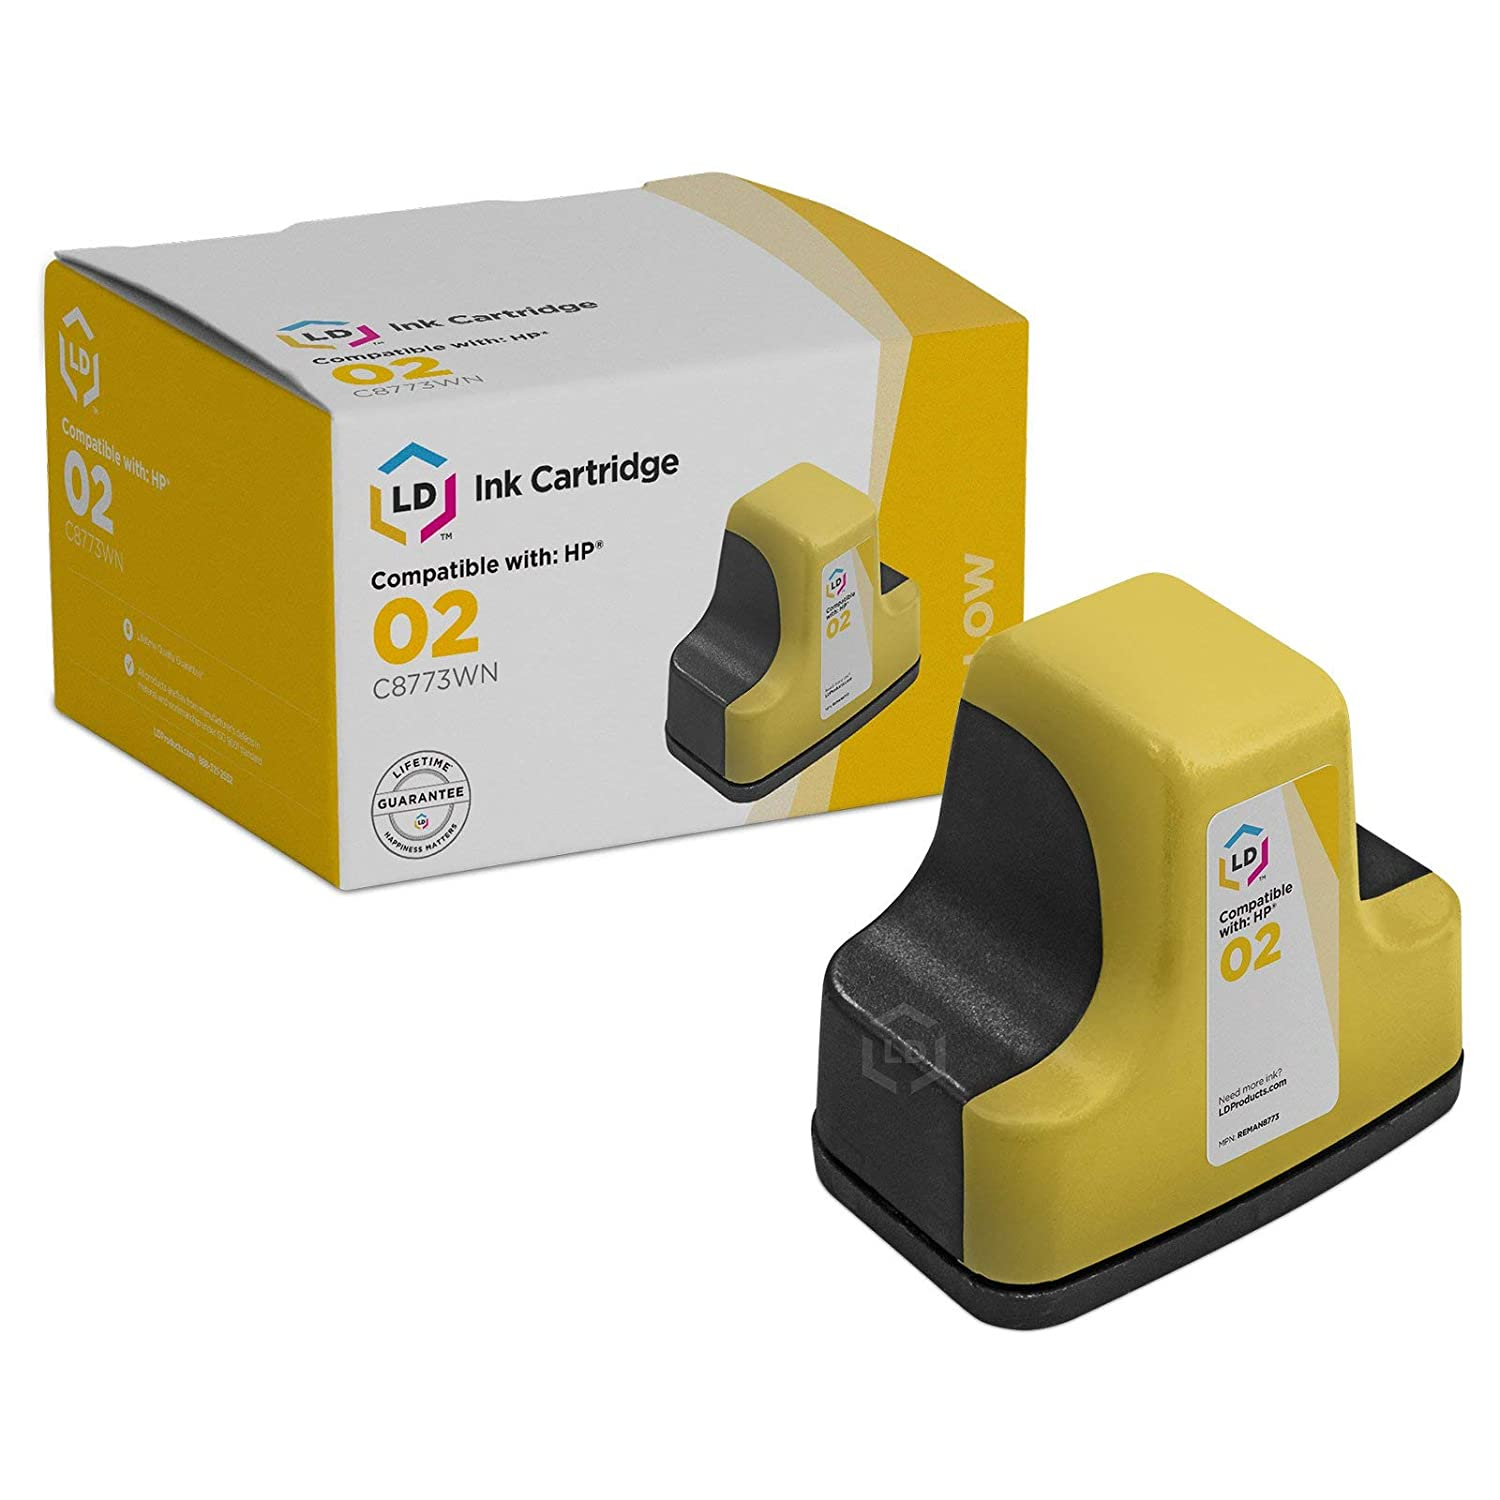 Amazon.com: LD Remanufactured Ink Cartridge Replacement for HP 02 C8773WN  (Yellow): Electronics